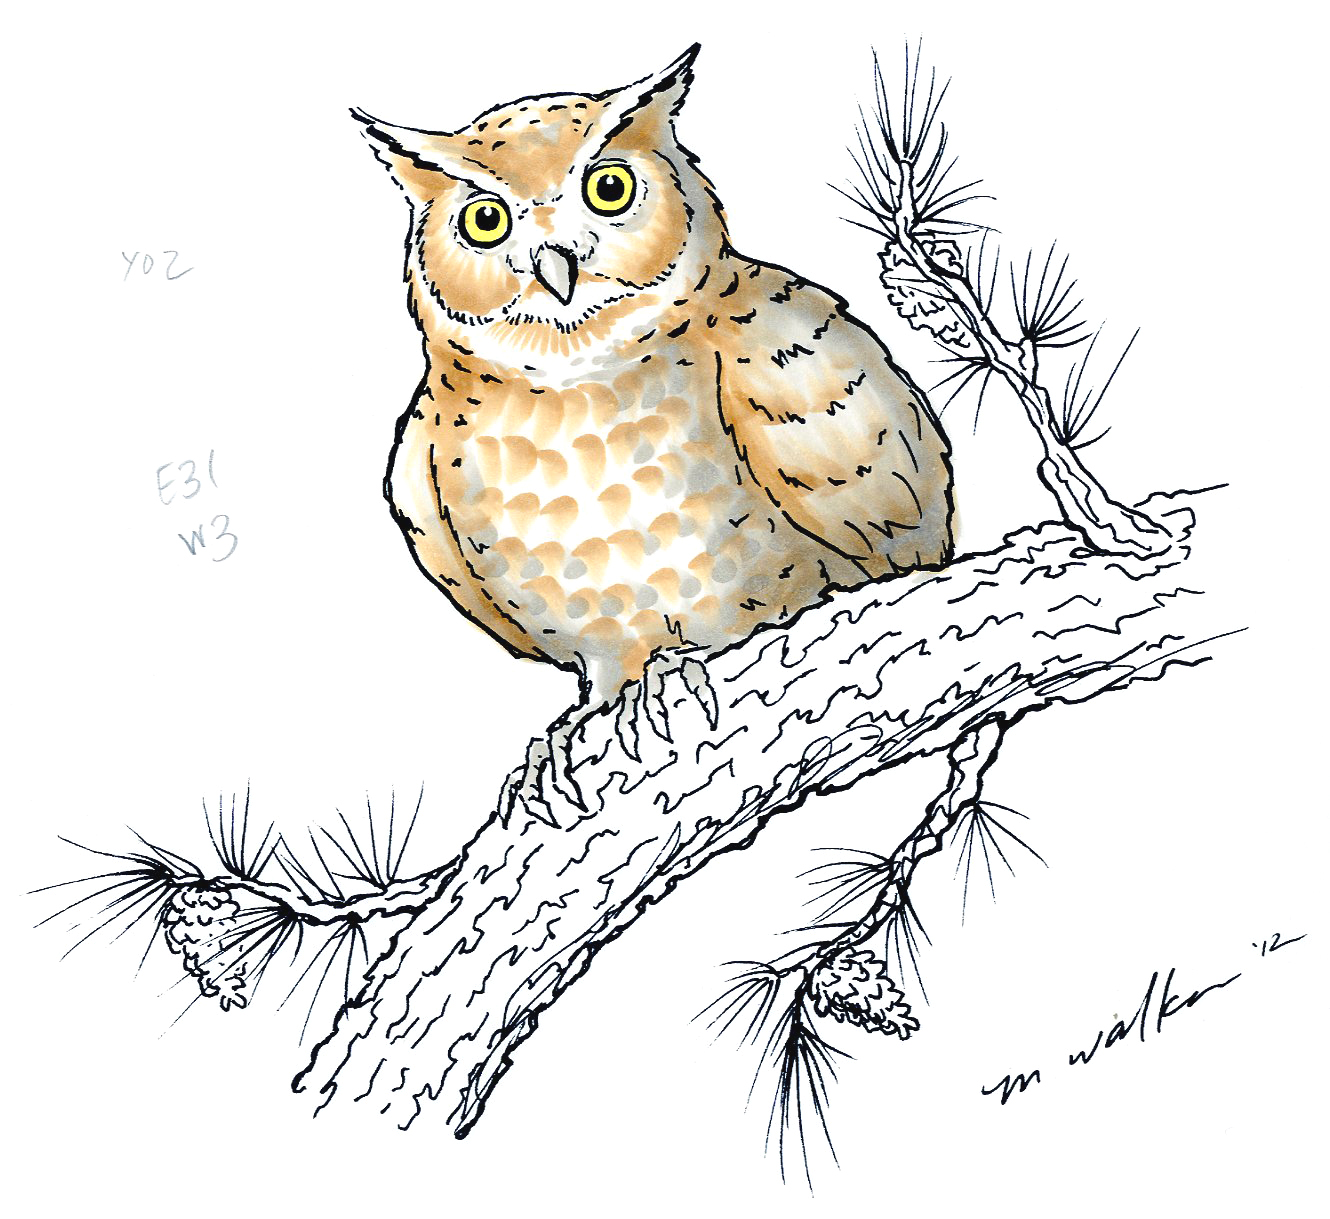 I Like Markers: Coloring an Owl